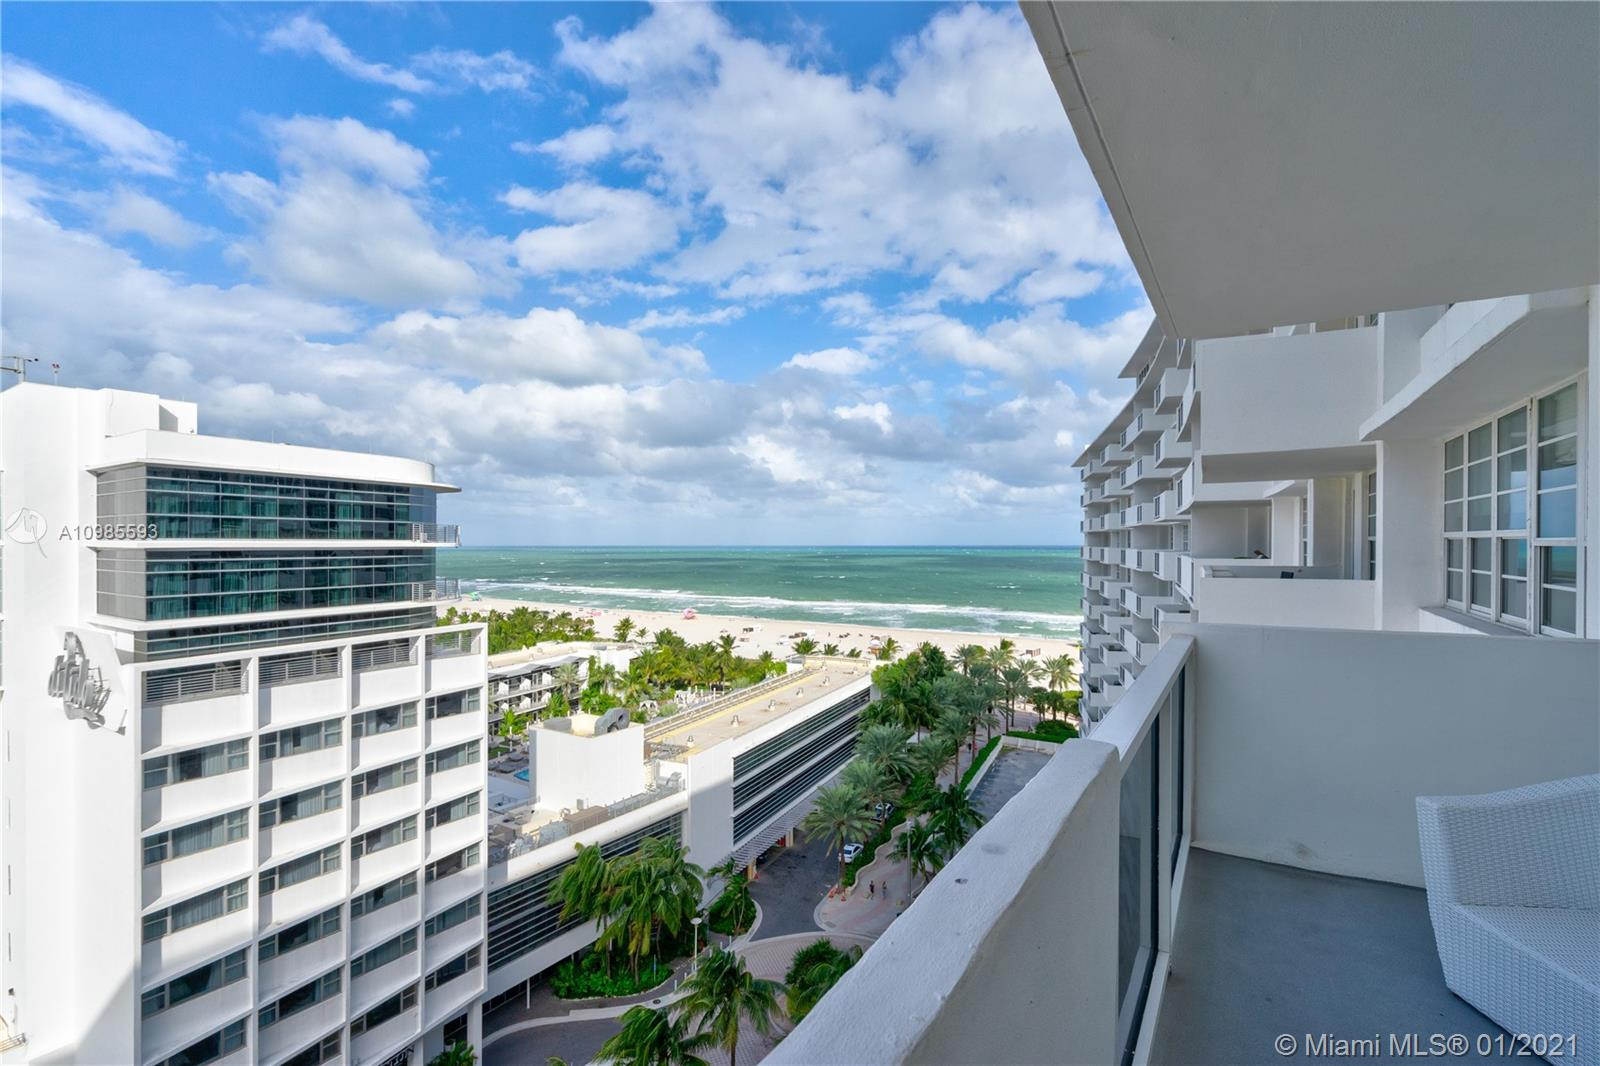 """Amazing Remodeling and Furnished Unit at  Decoplage located in one of the most desirable address at South Beach where Lincoln Road meets the Ocean. This furnished Unit with marble floor has a great Living Room with open balcony and so nice ocean View, Kitchen with top of line appliances, Hurricane Impact Windows, valet parking included in the maintenance and much more. Decoplage Building has a lot of great features like brand new infinity and heated pool, new lobby, nice and equipped Gym, valet parking, concierge and security!! Owner will pay the full Assessment at the Closing! YOU MUST SEE IT!!!"""""""